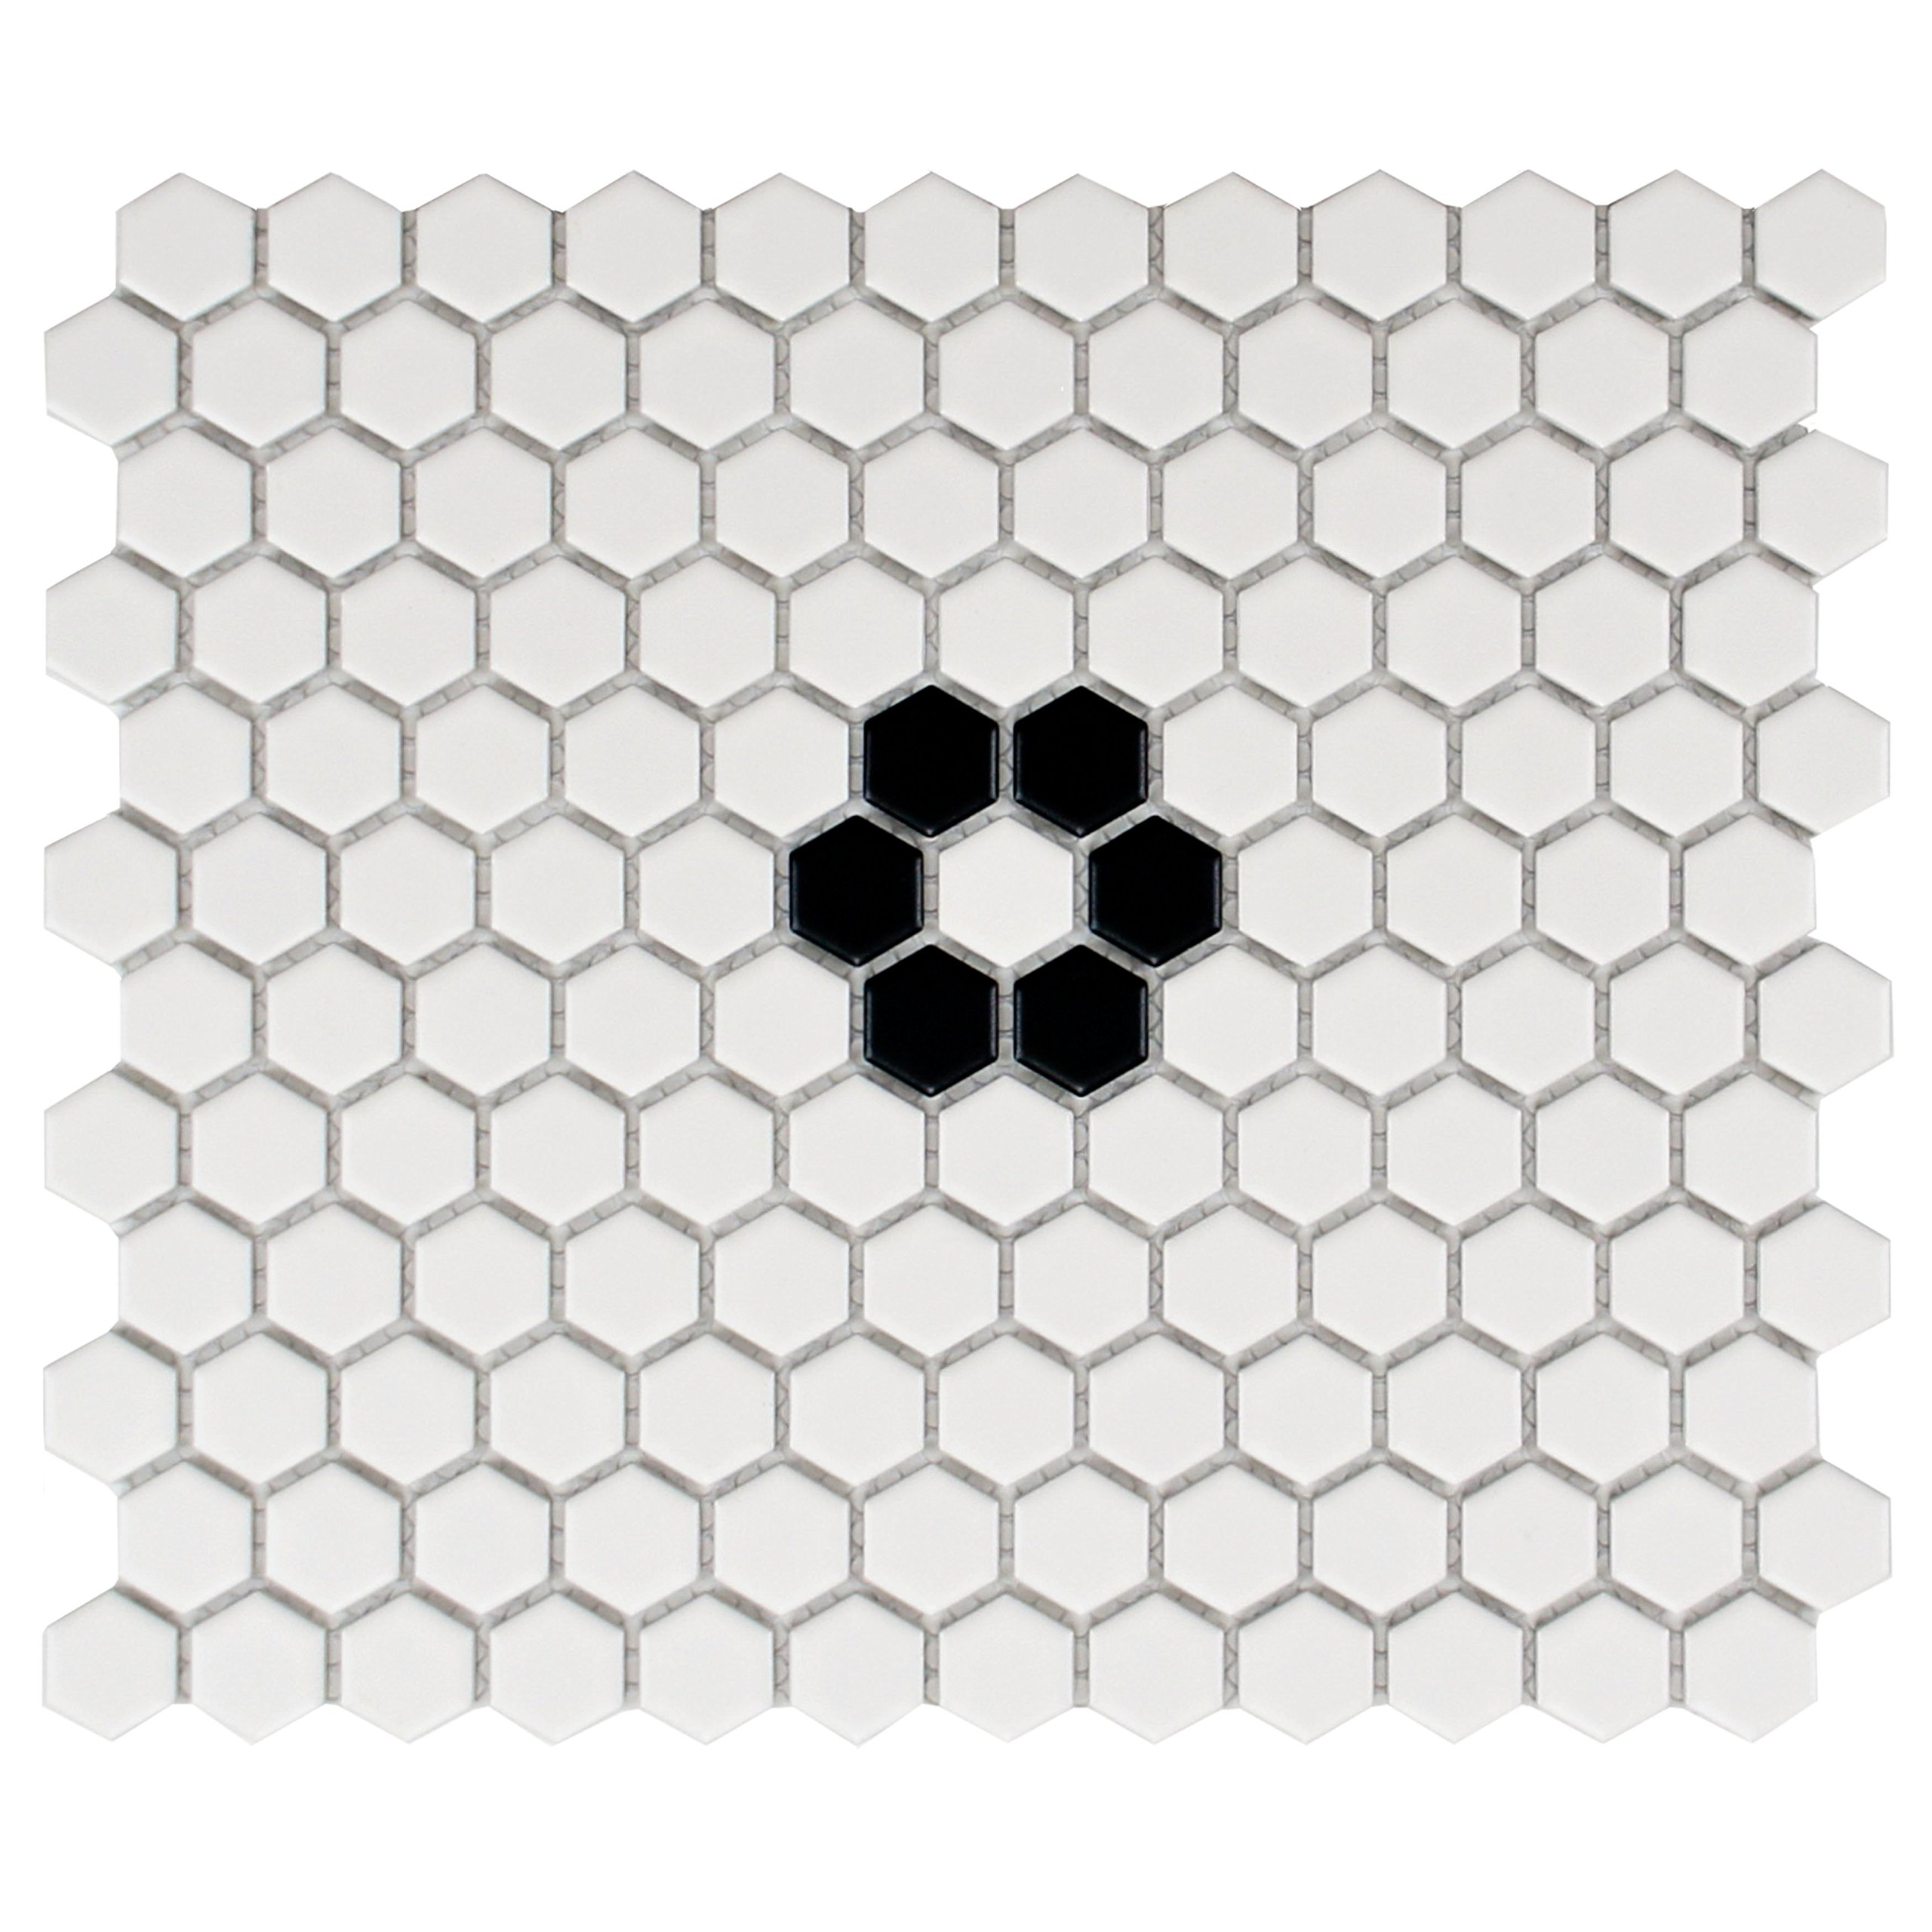 SomerTile FXLM1HMF Retro Hex with Flower Porcelain Floor and Wall Tile, 10.25'' x 11.75'', Matte White